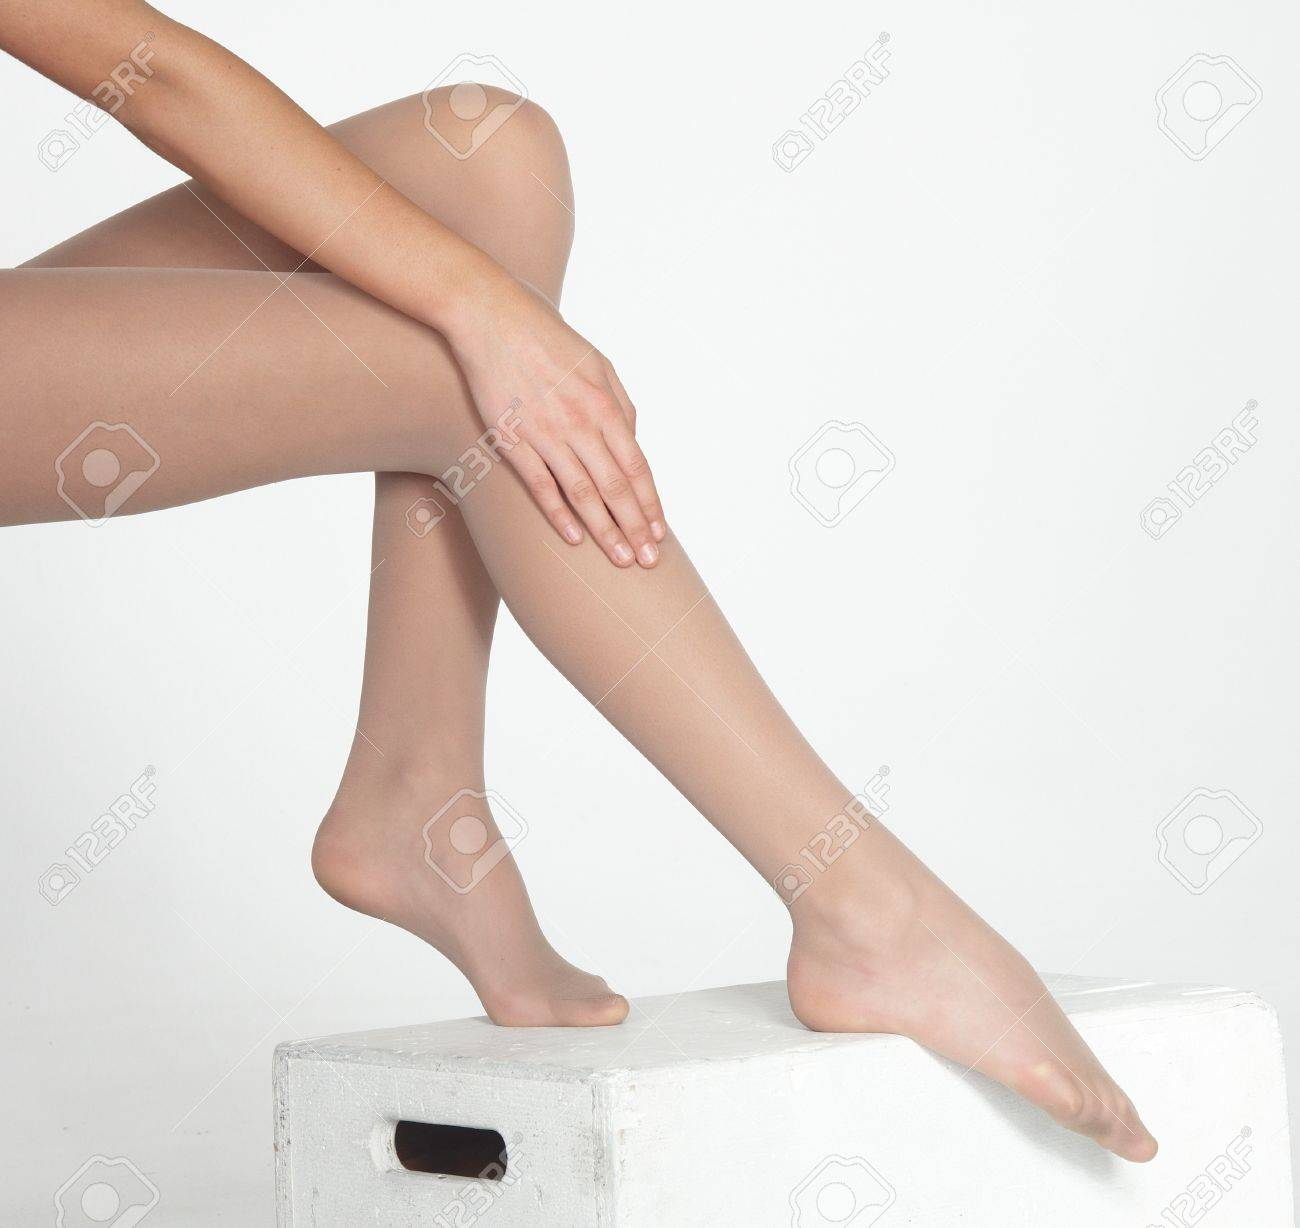 de7a98c2874 Stock Photo - Woman s Legs Wearing Sheer Nude Pantyhose Isolated Against a  White Studio Background